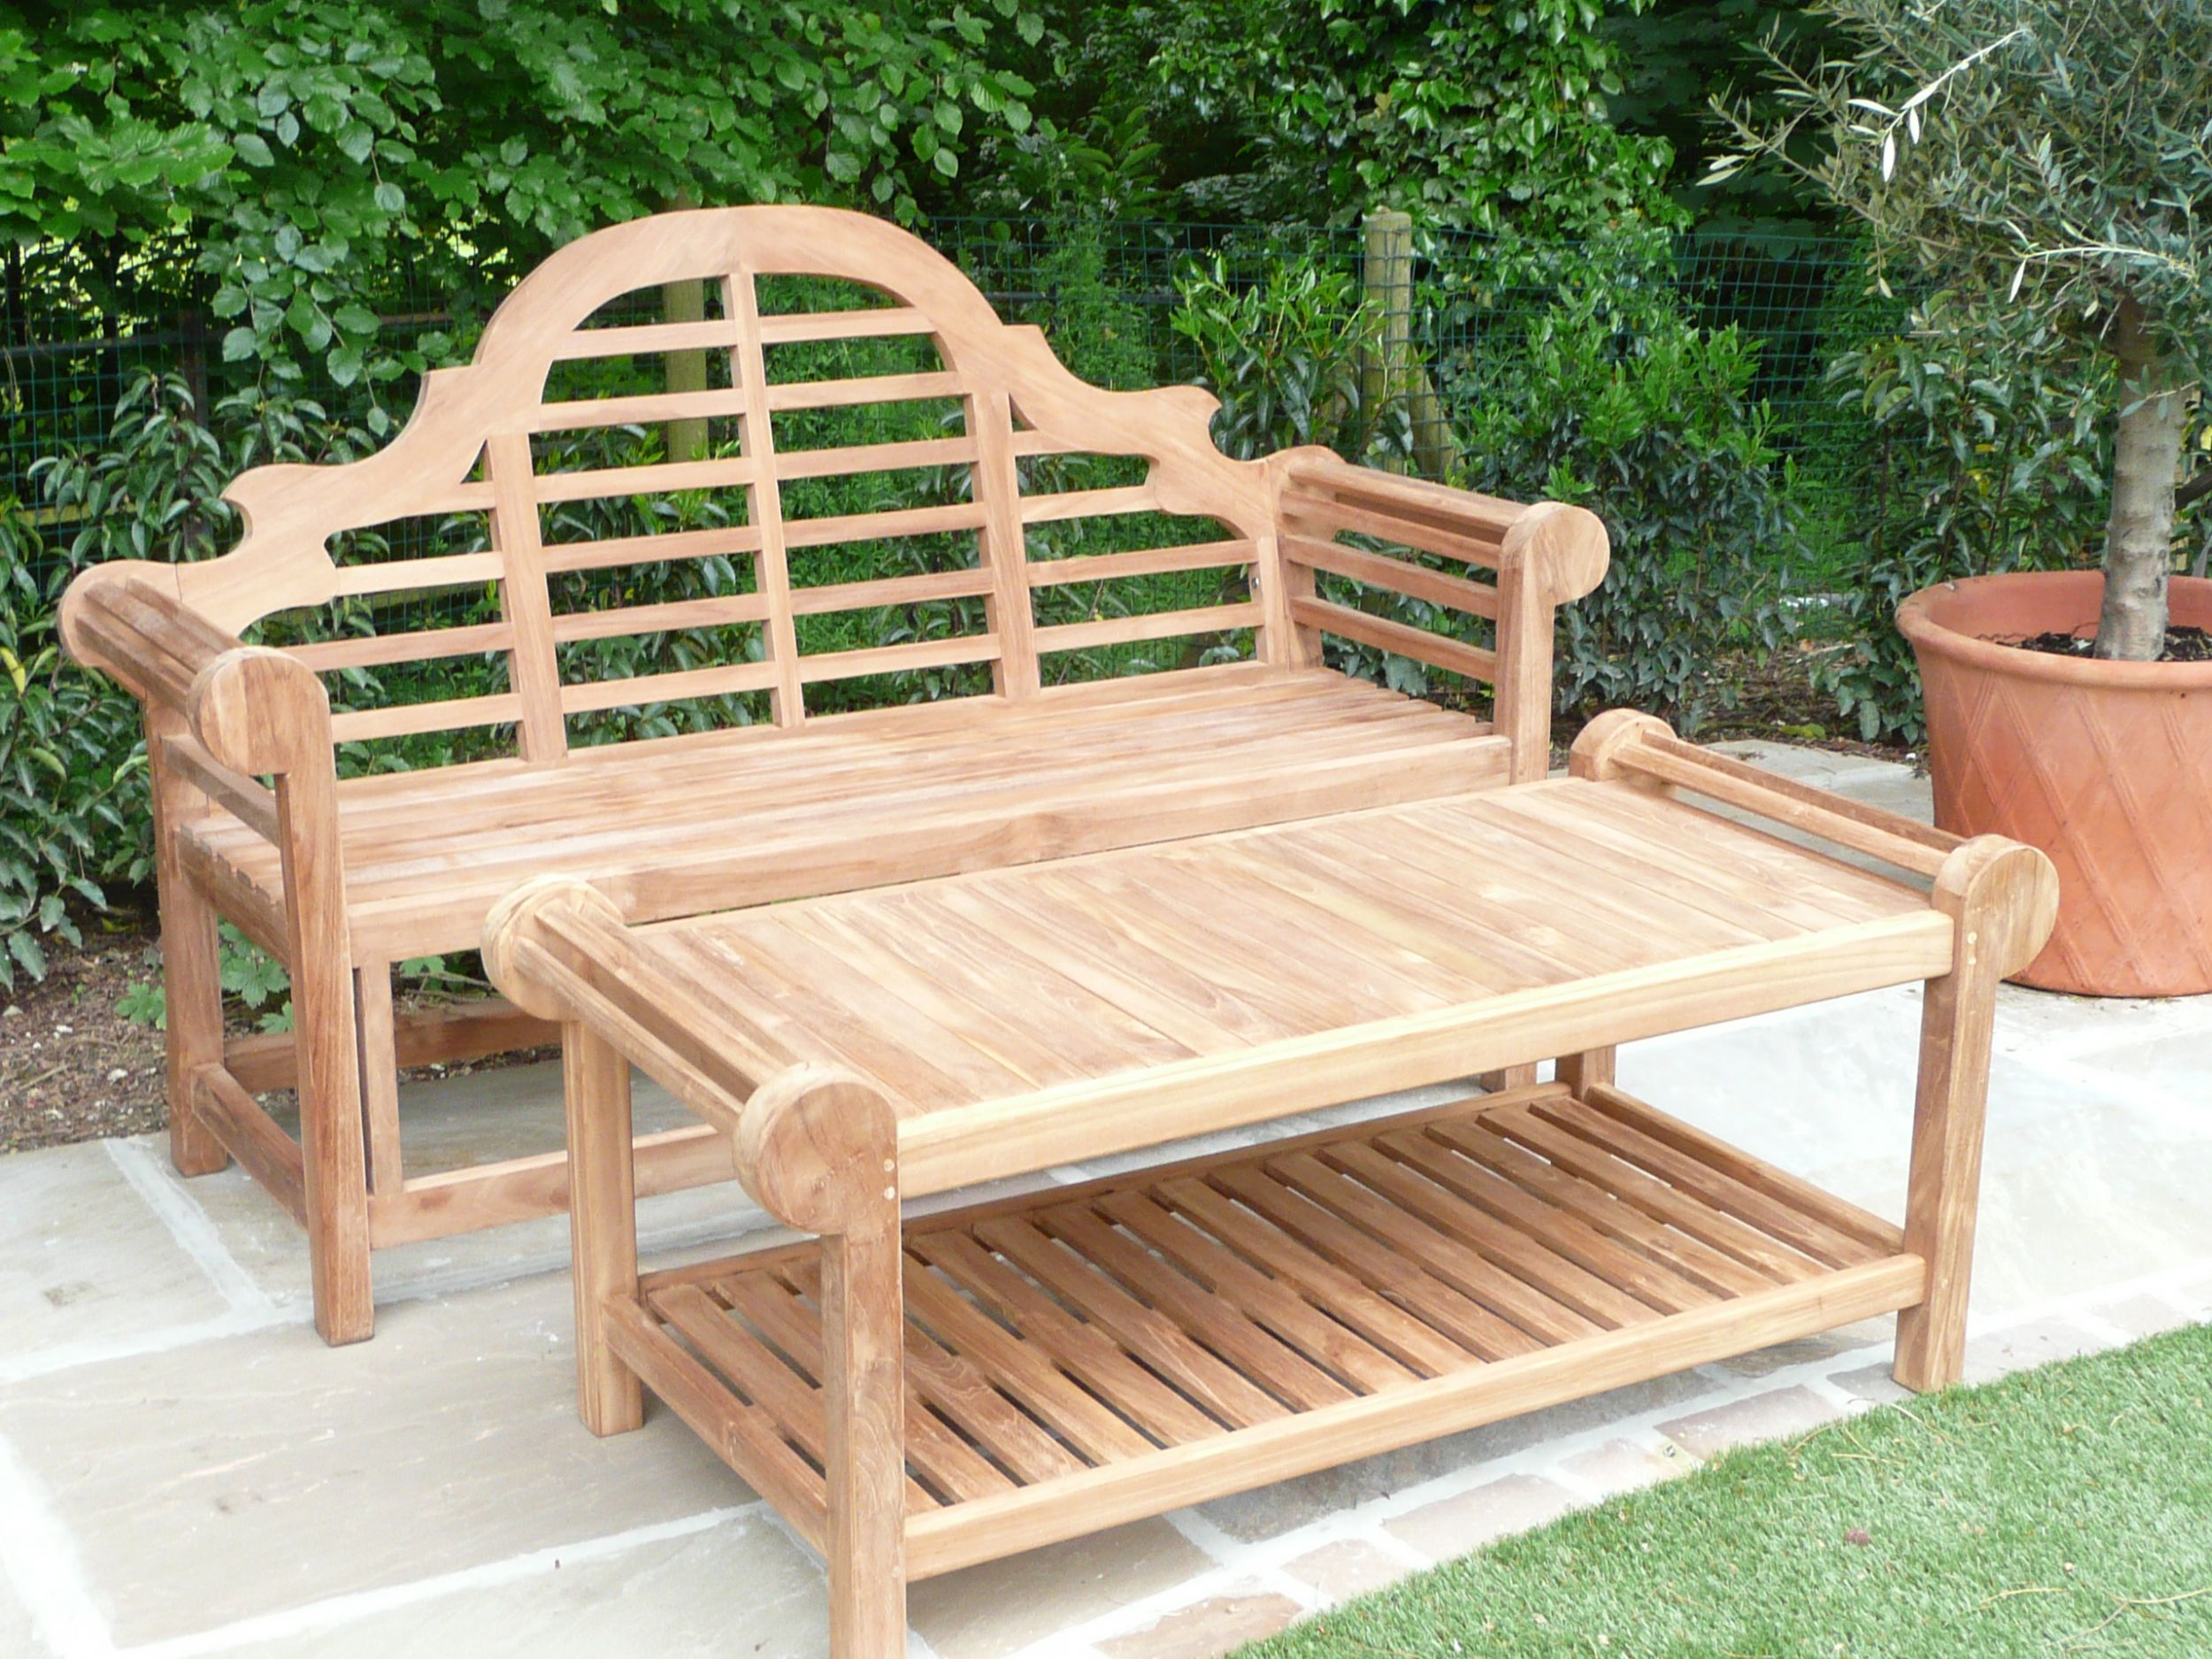 Lutyens Teak Bench & Coffee Table Humber Imports UK